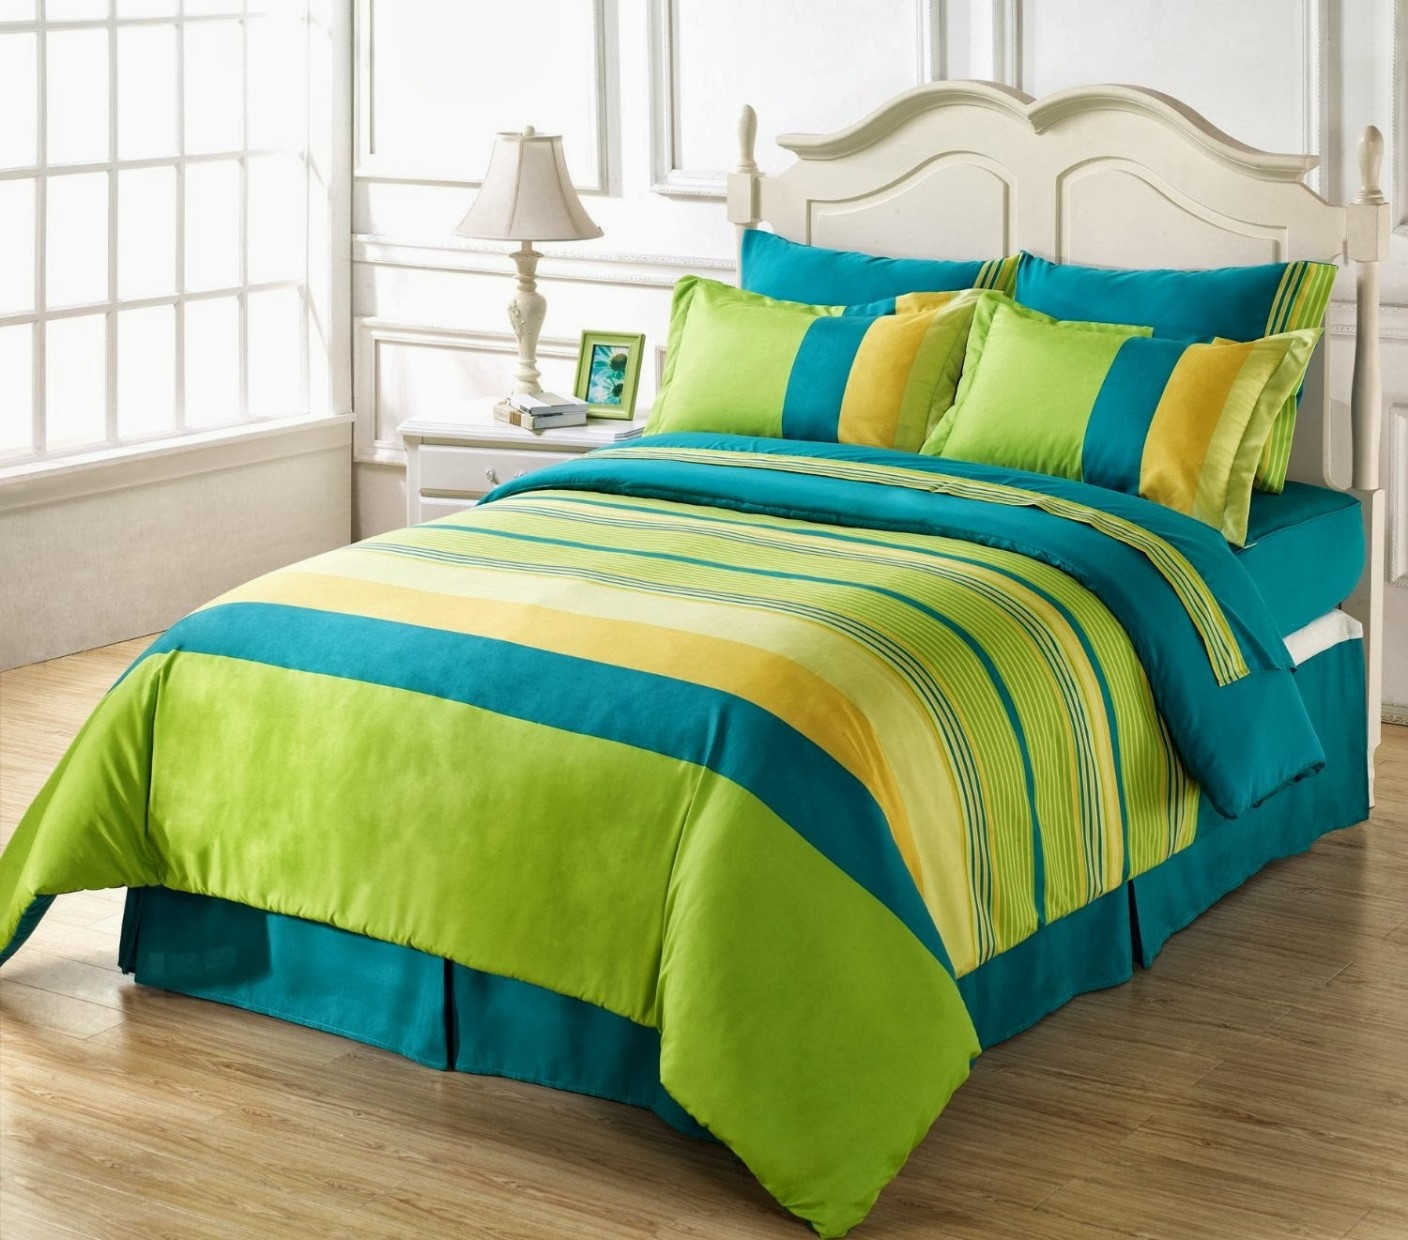 Double Queen Bed Sheets